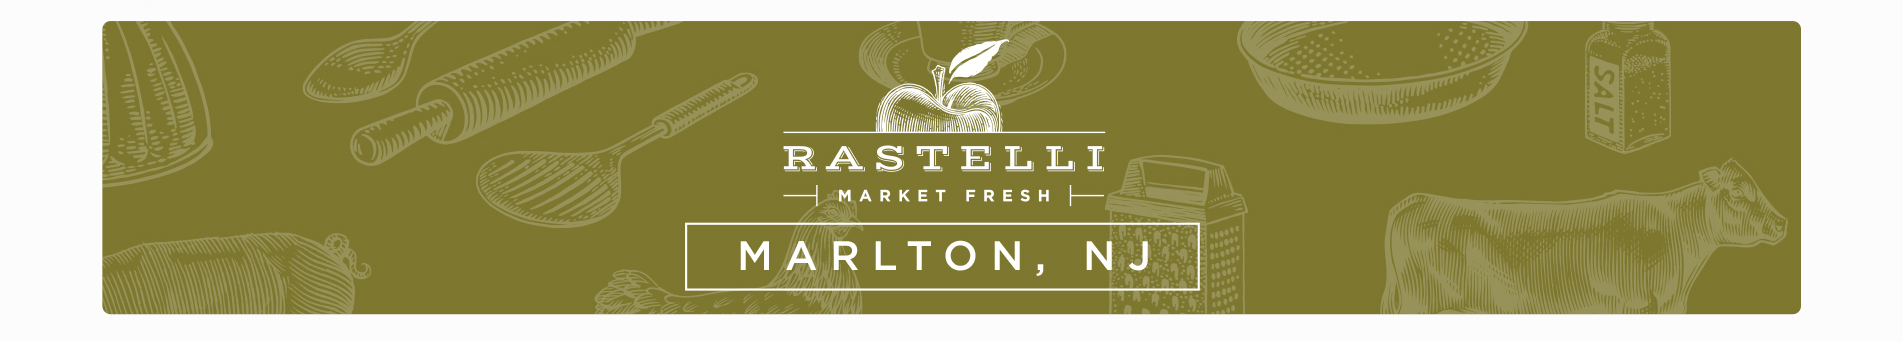 Rastelli Foods Group - MARLTON, NJ